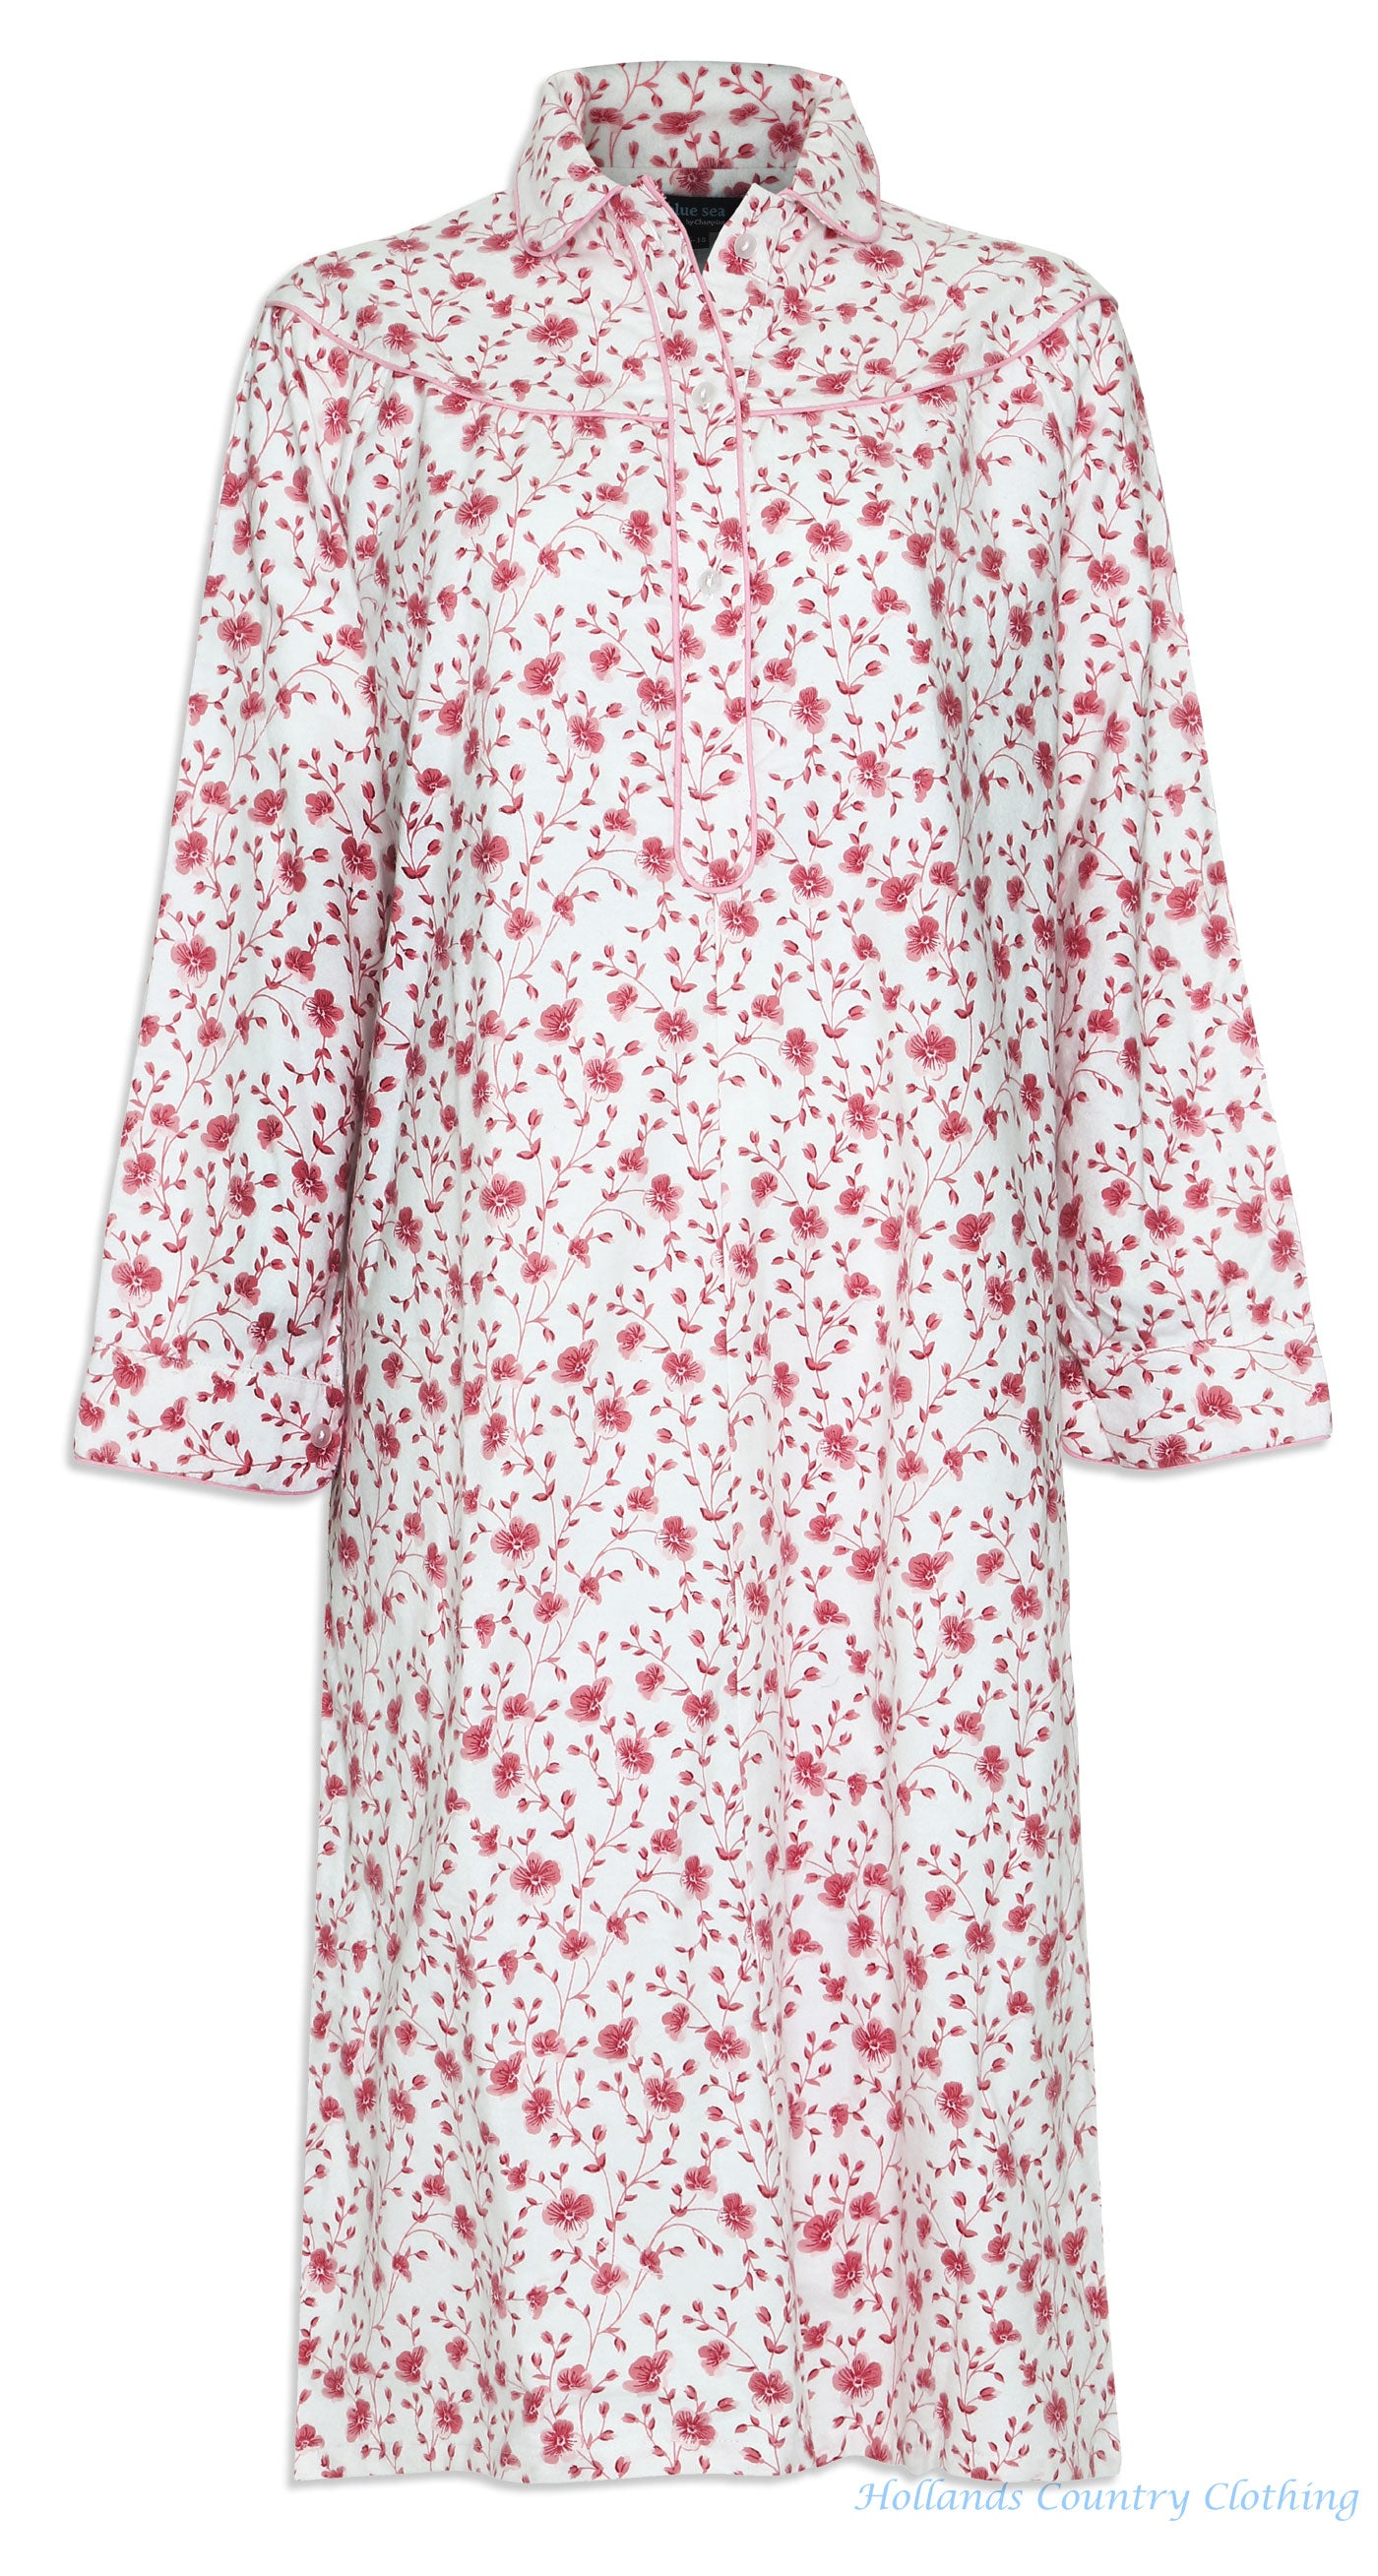 pink and white Champion Ladies Eleanor Floral Nightdress cotton in blue and pink flower pattern